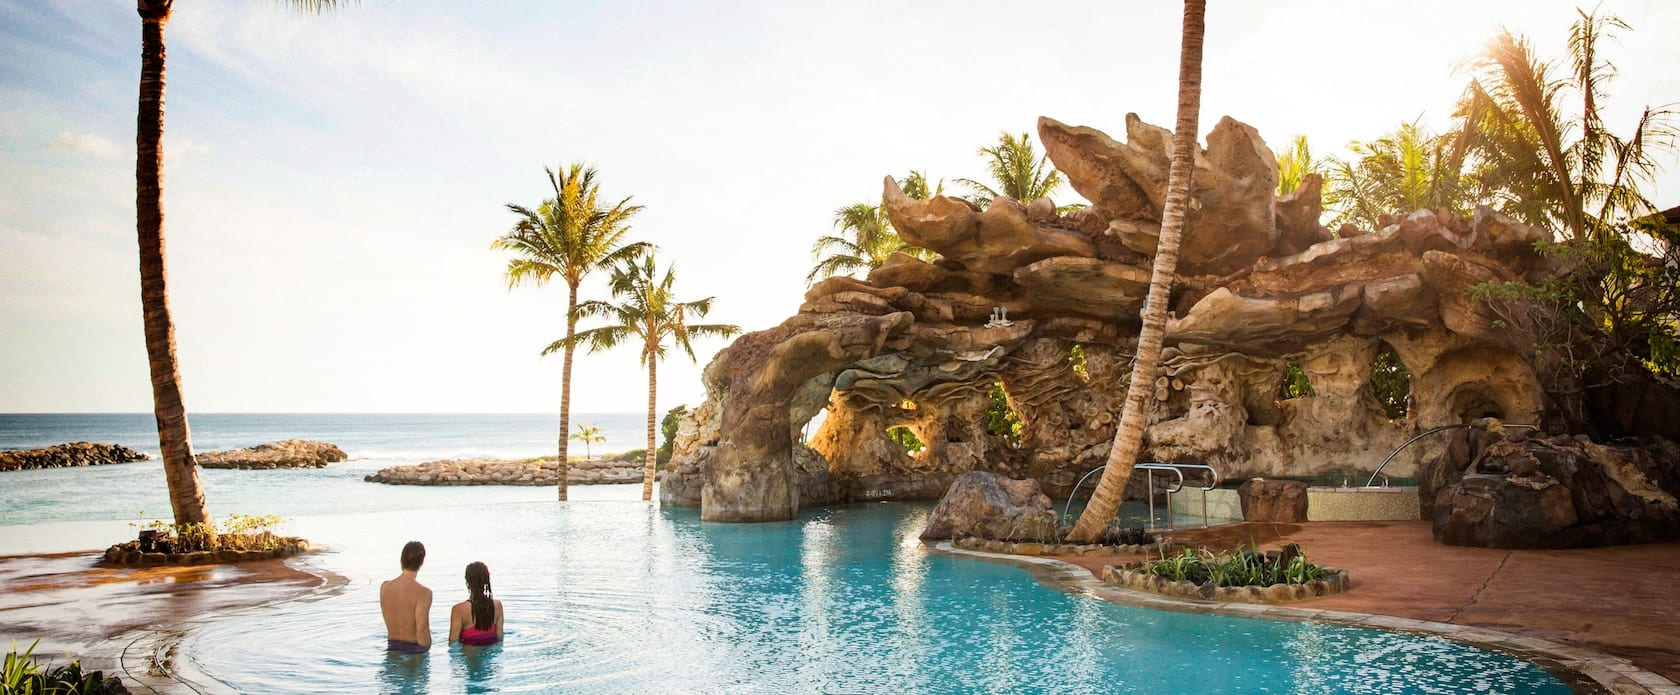 Where Can You Experience Mischievous Waters at Aulani Resort? [Source: Disney Aulani Resort]